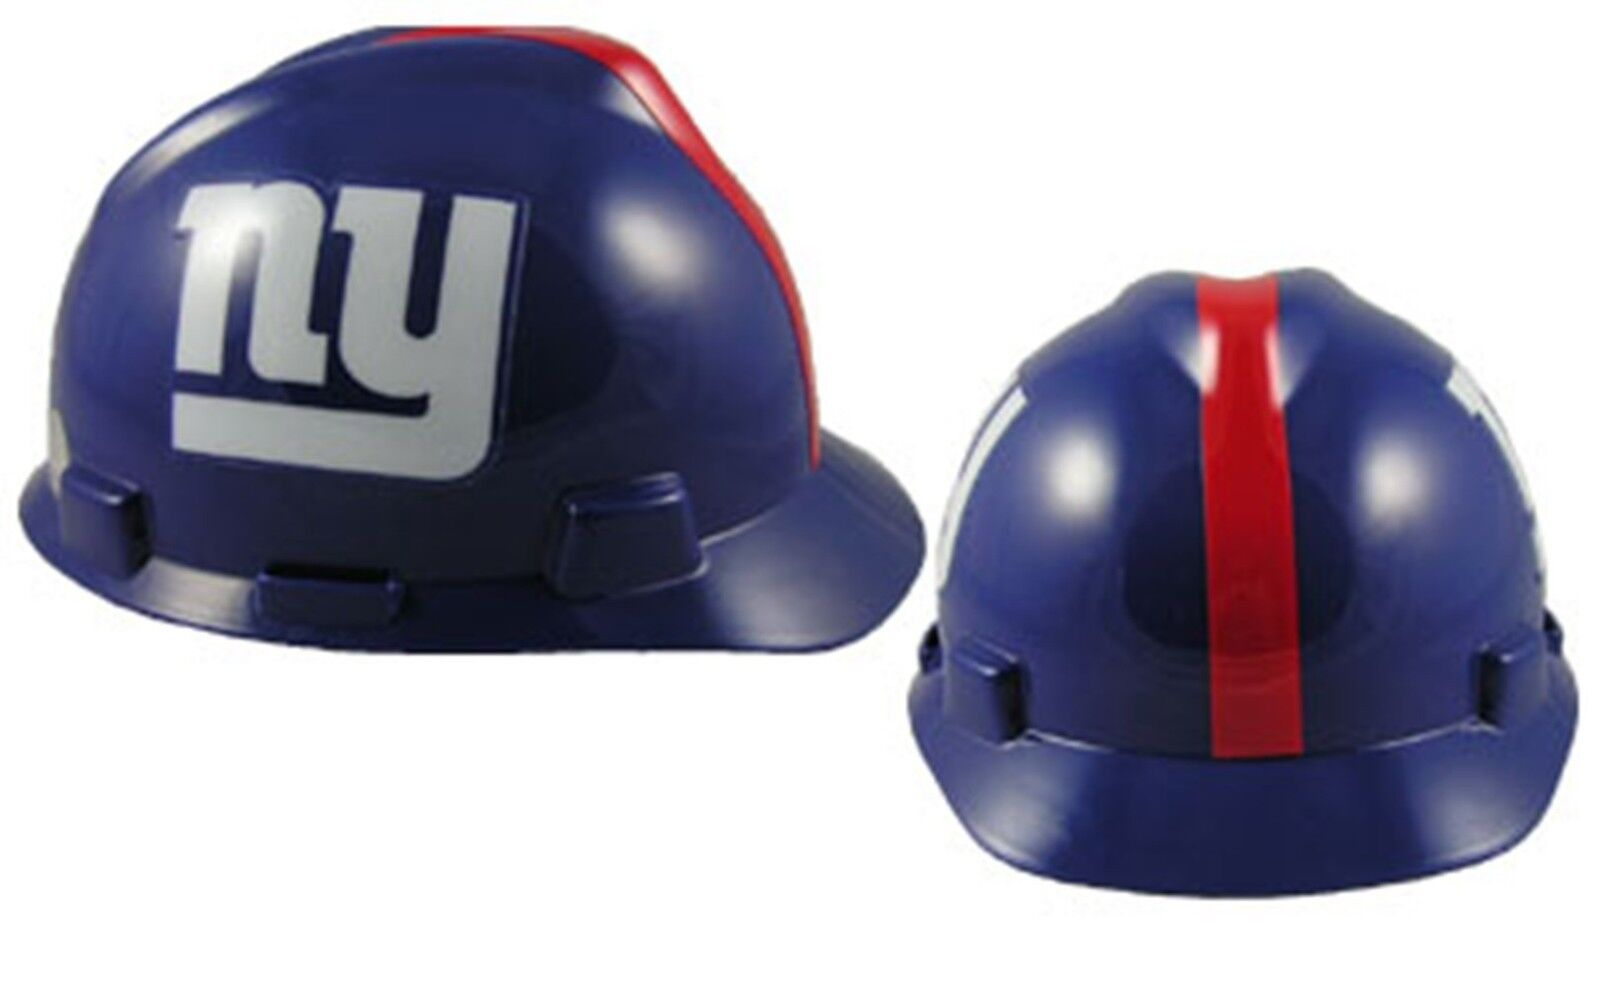 MSA V-Gard Cap Type New York Giants NFL Hard Hat Pin Type Suspension ... 95beea27fec